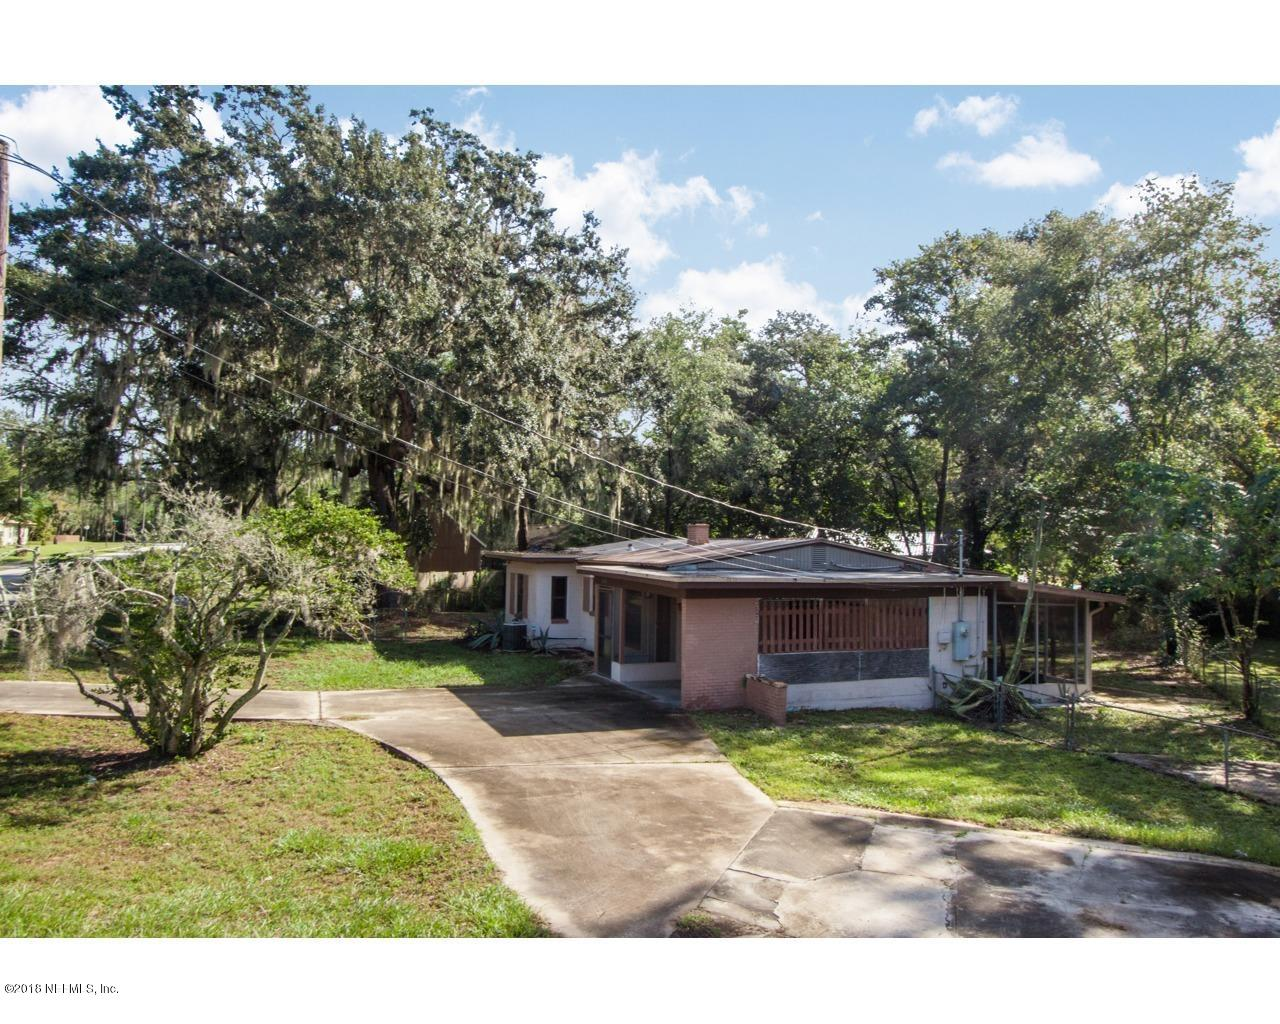 2215 SILVER LAKE, PALATKA, FLORIDA 32177, 2 Bedrooms Bedrooms, ,1 BathroomBathrooms,Residential - single family,For sale,SILVER LAKE,944250